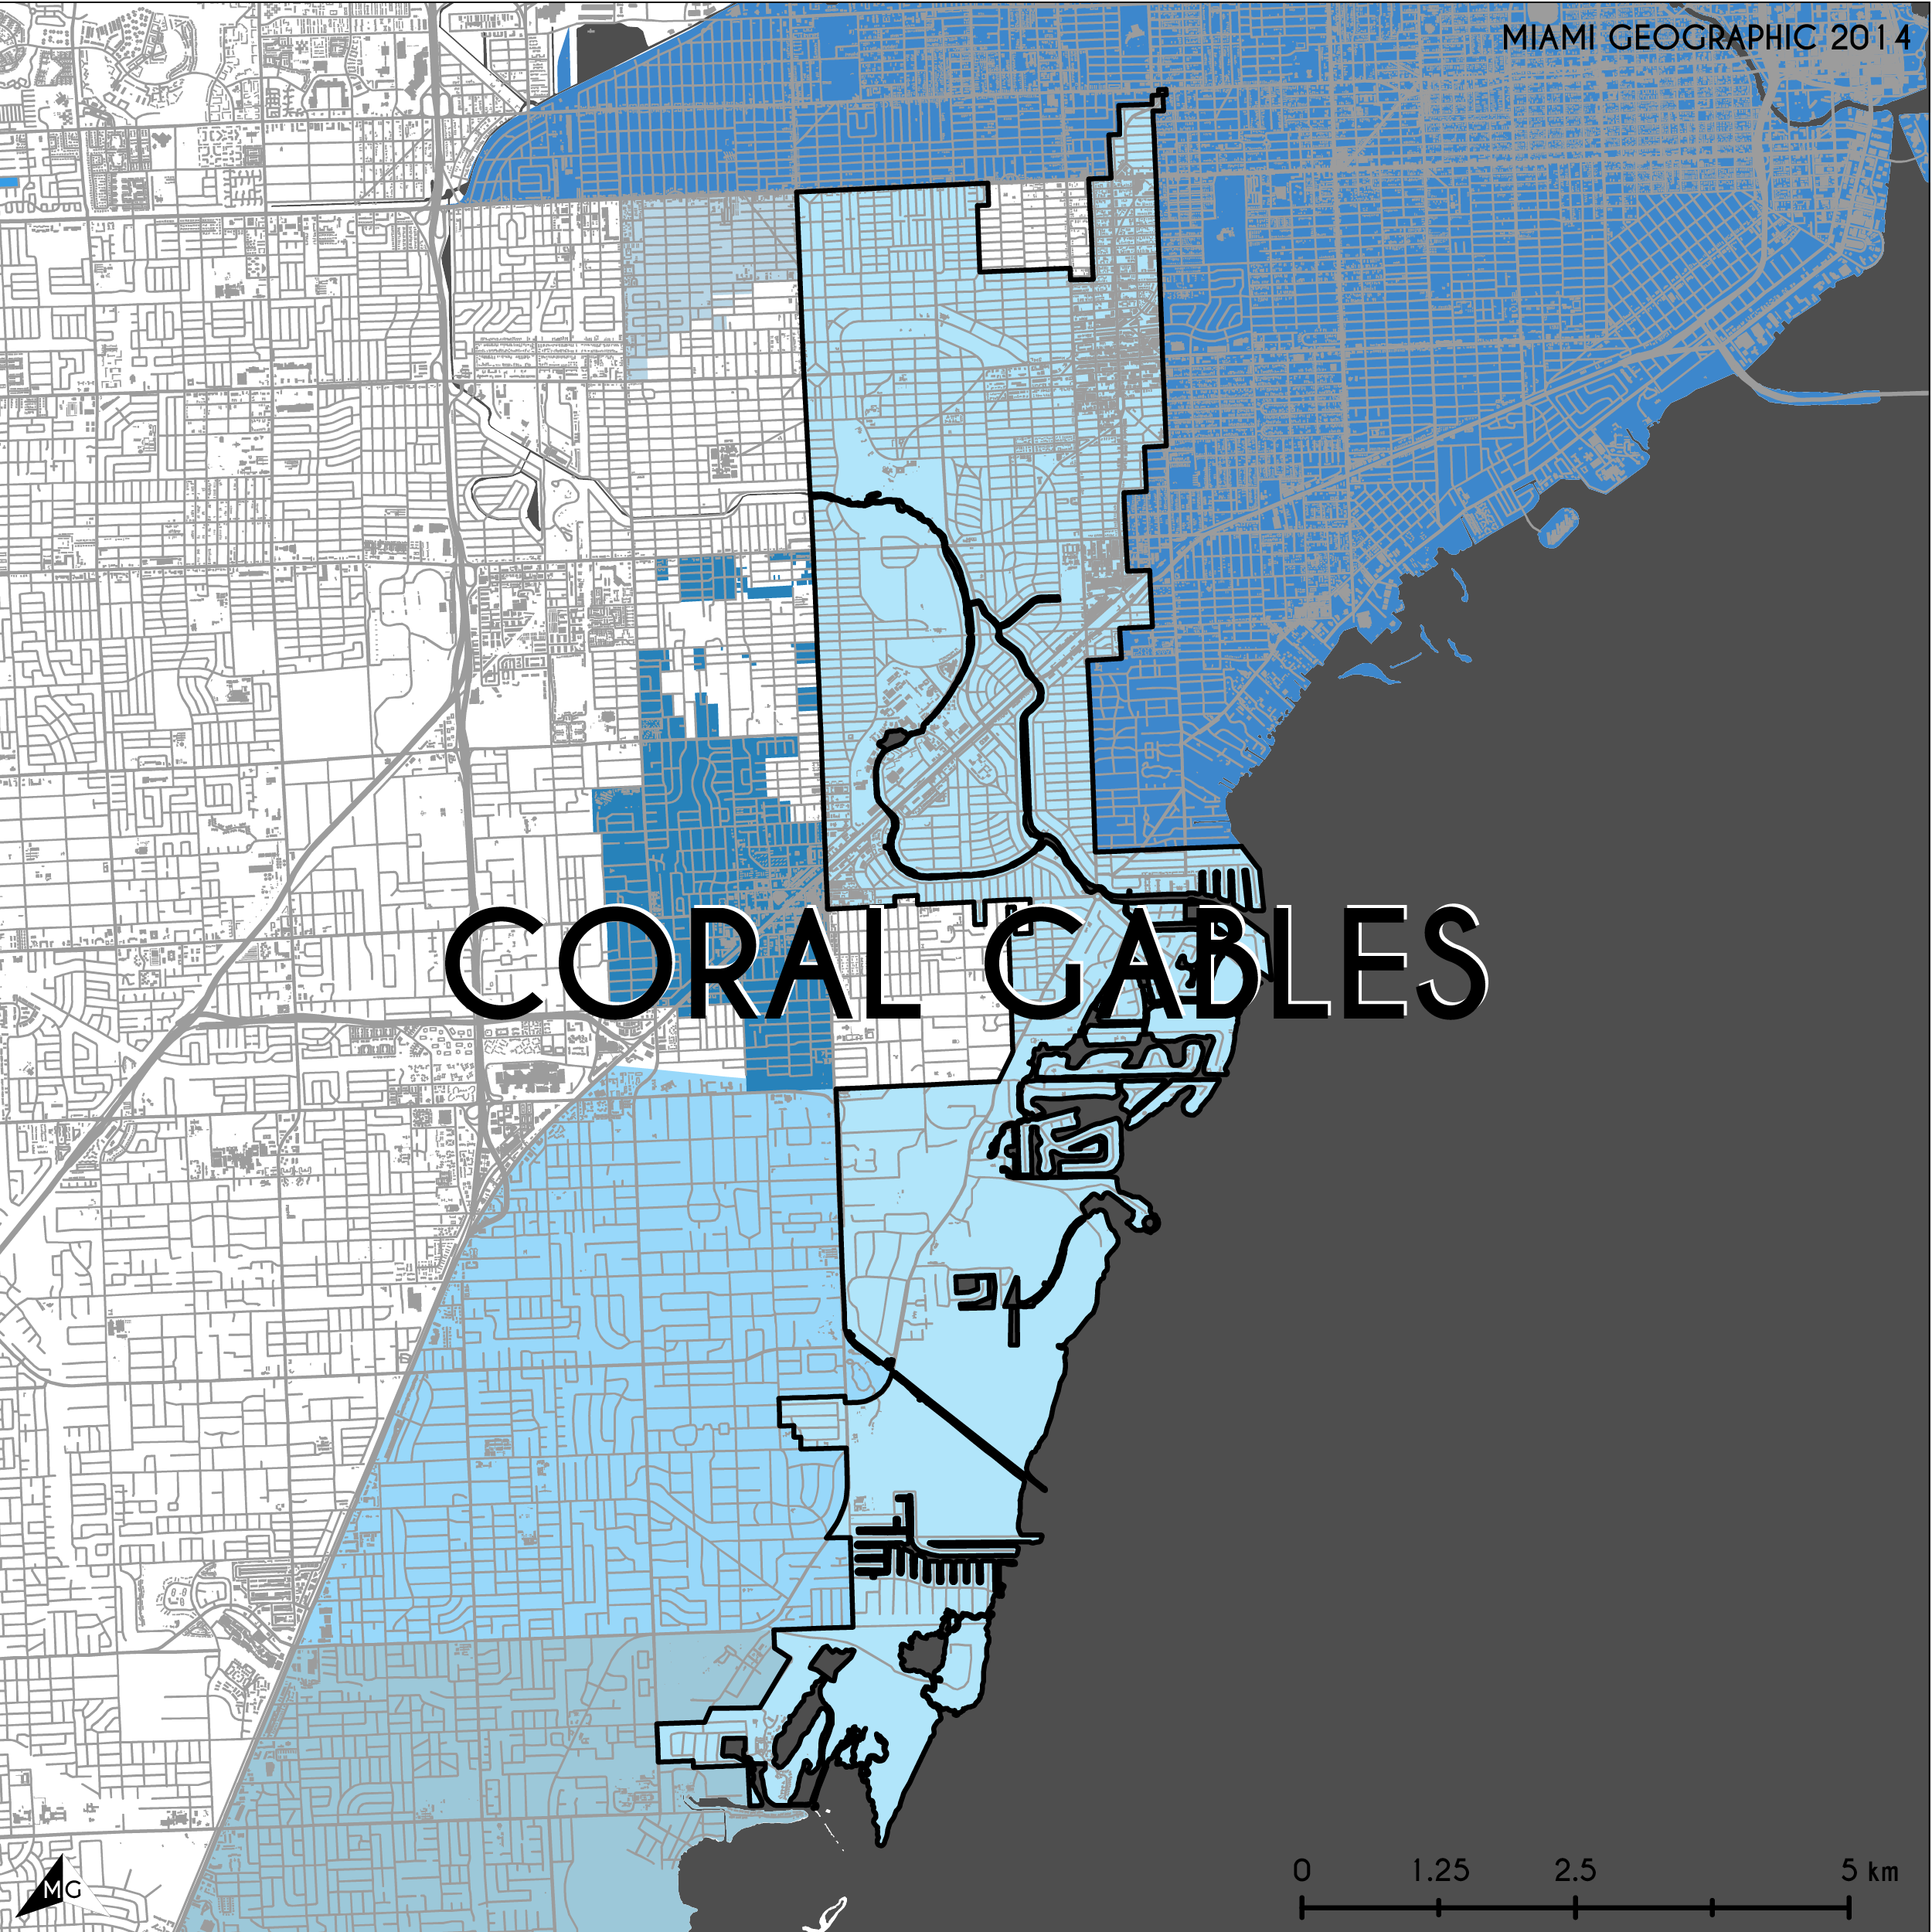 City of west miami boundaries in dating